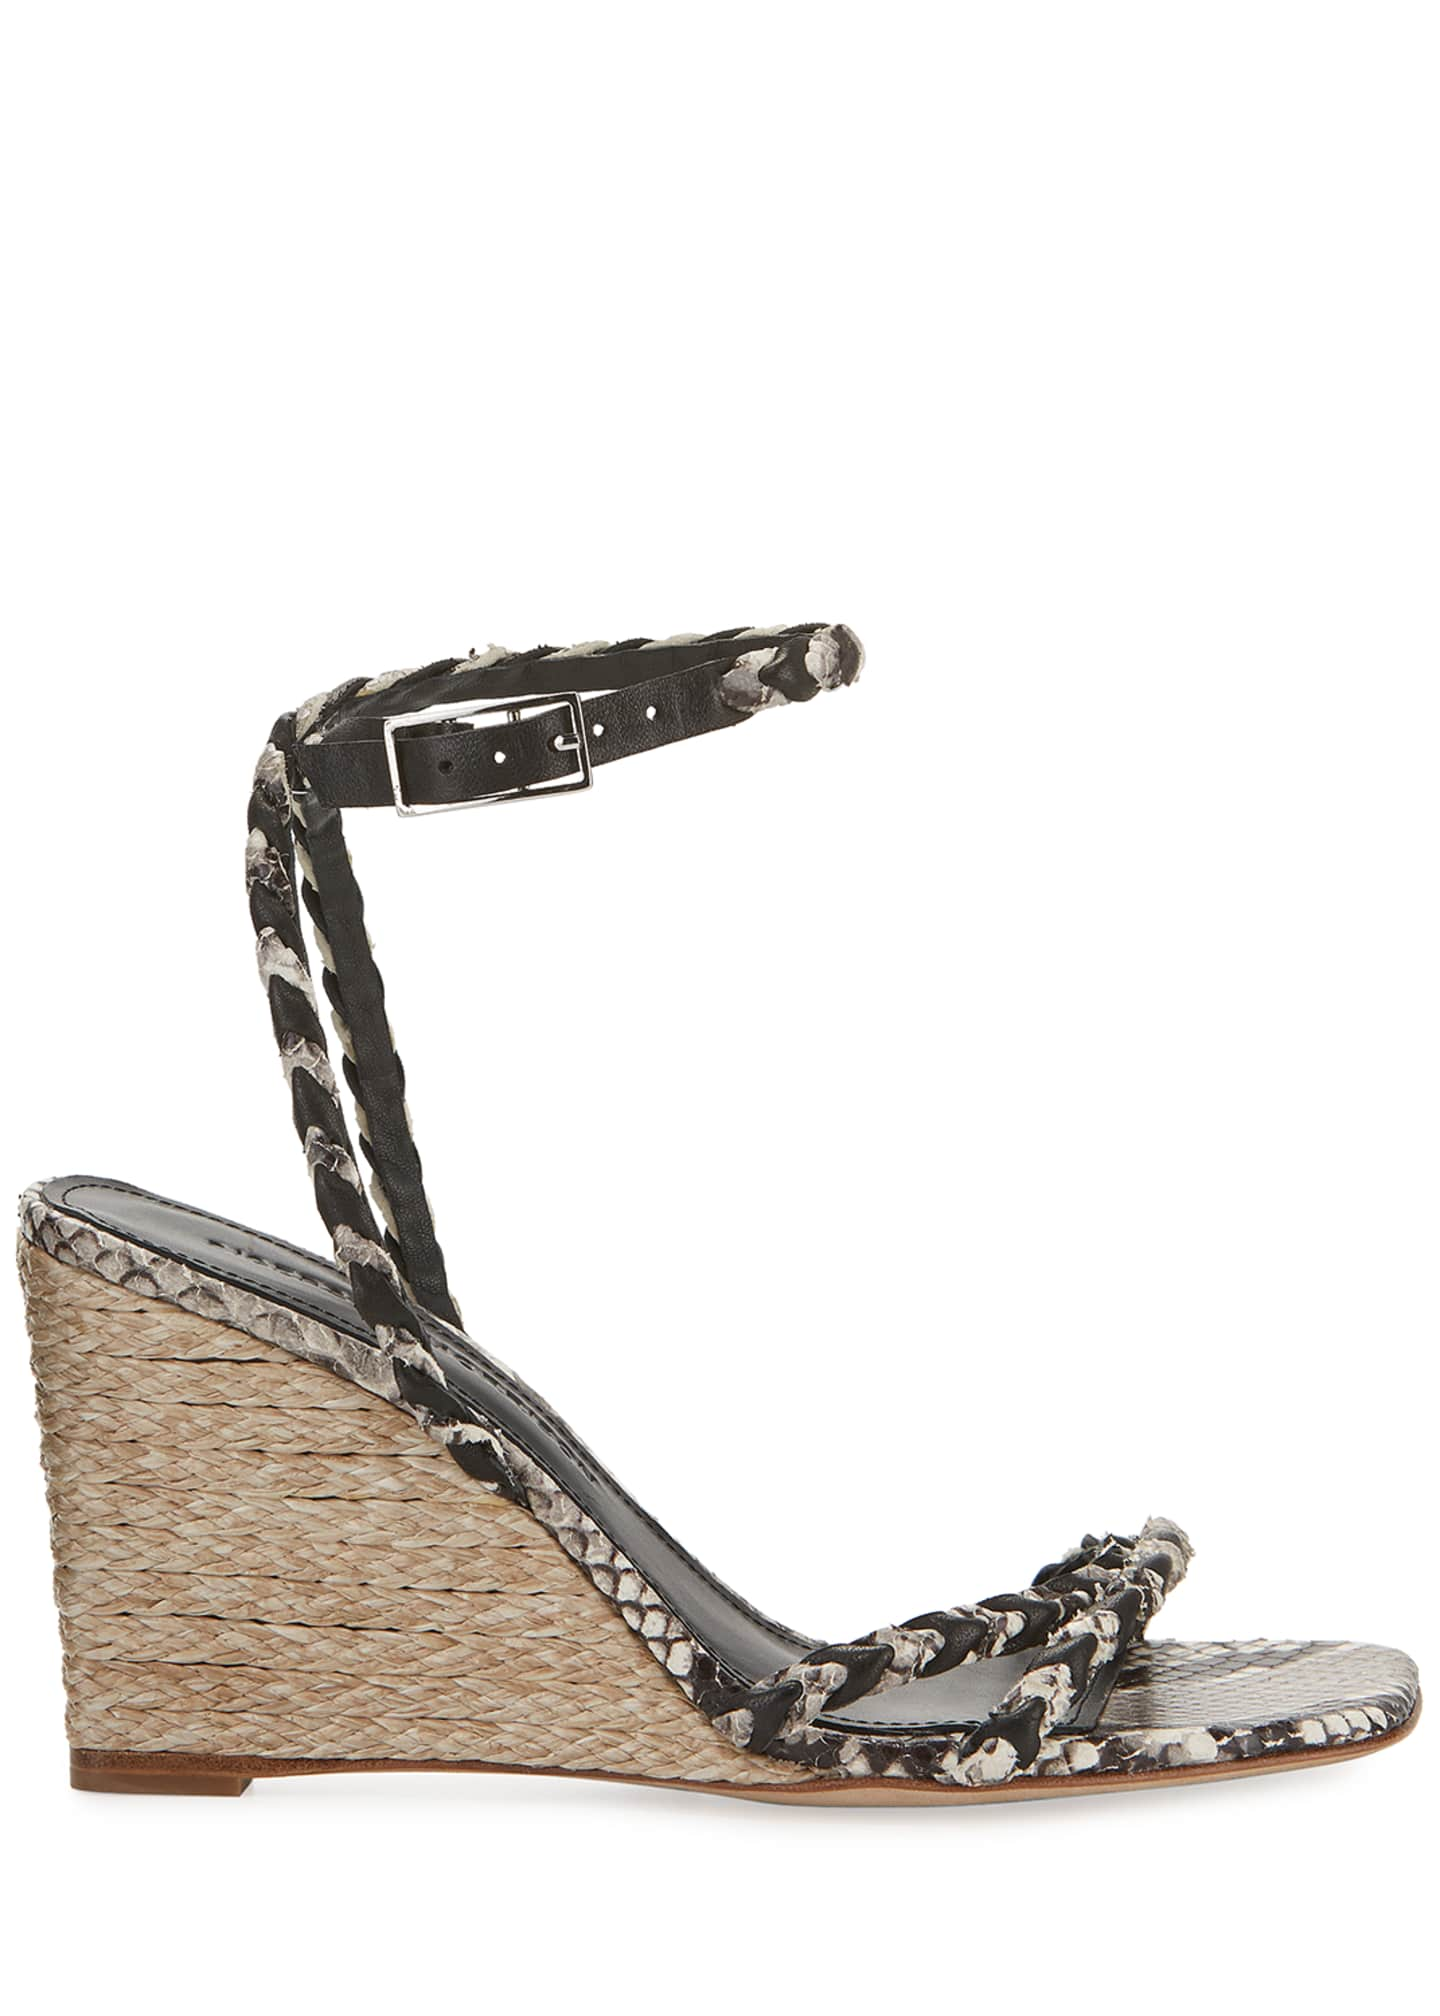 Image 2 of 5: Justice Wedge Sandals